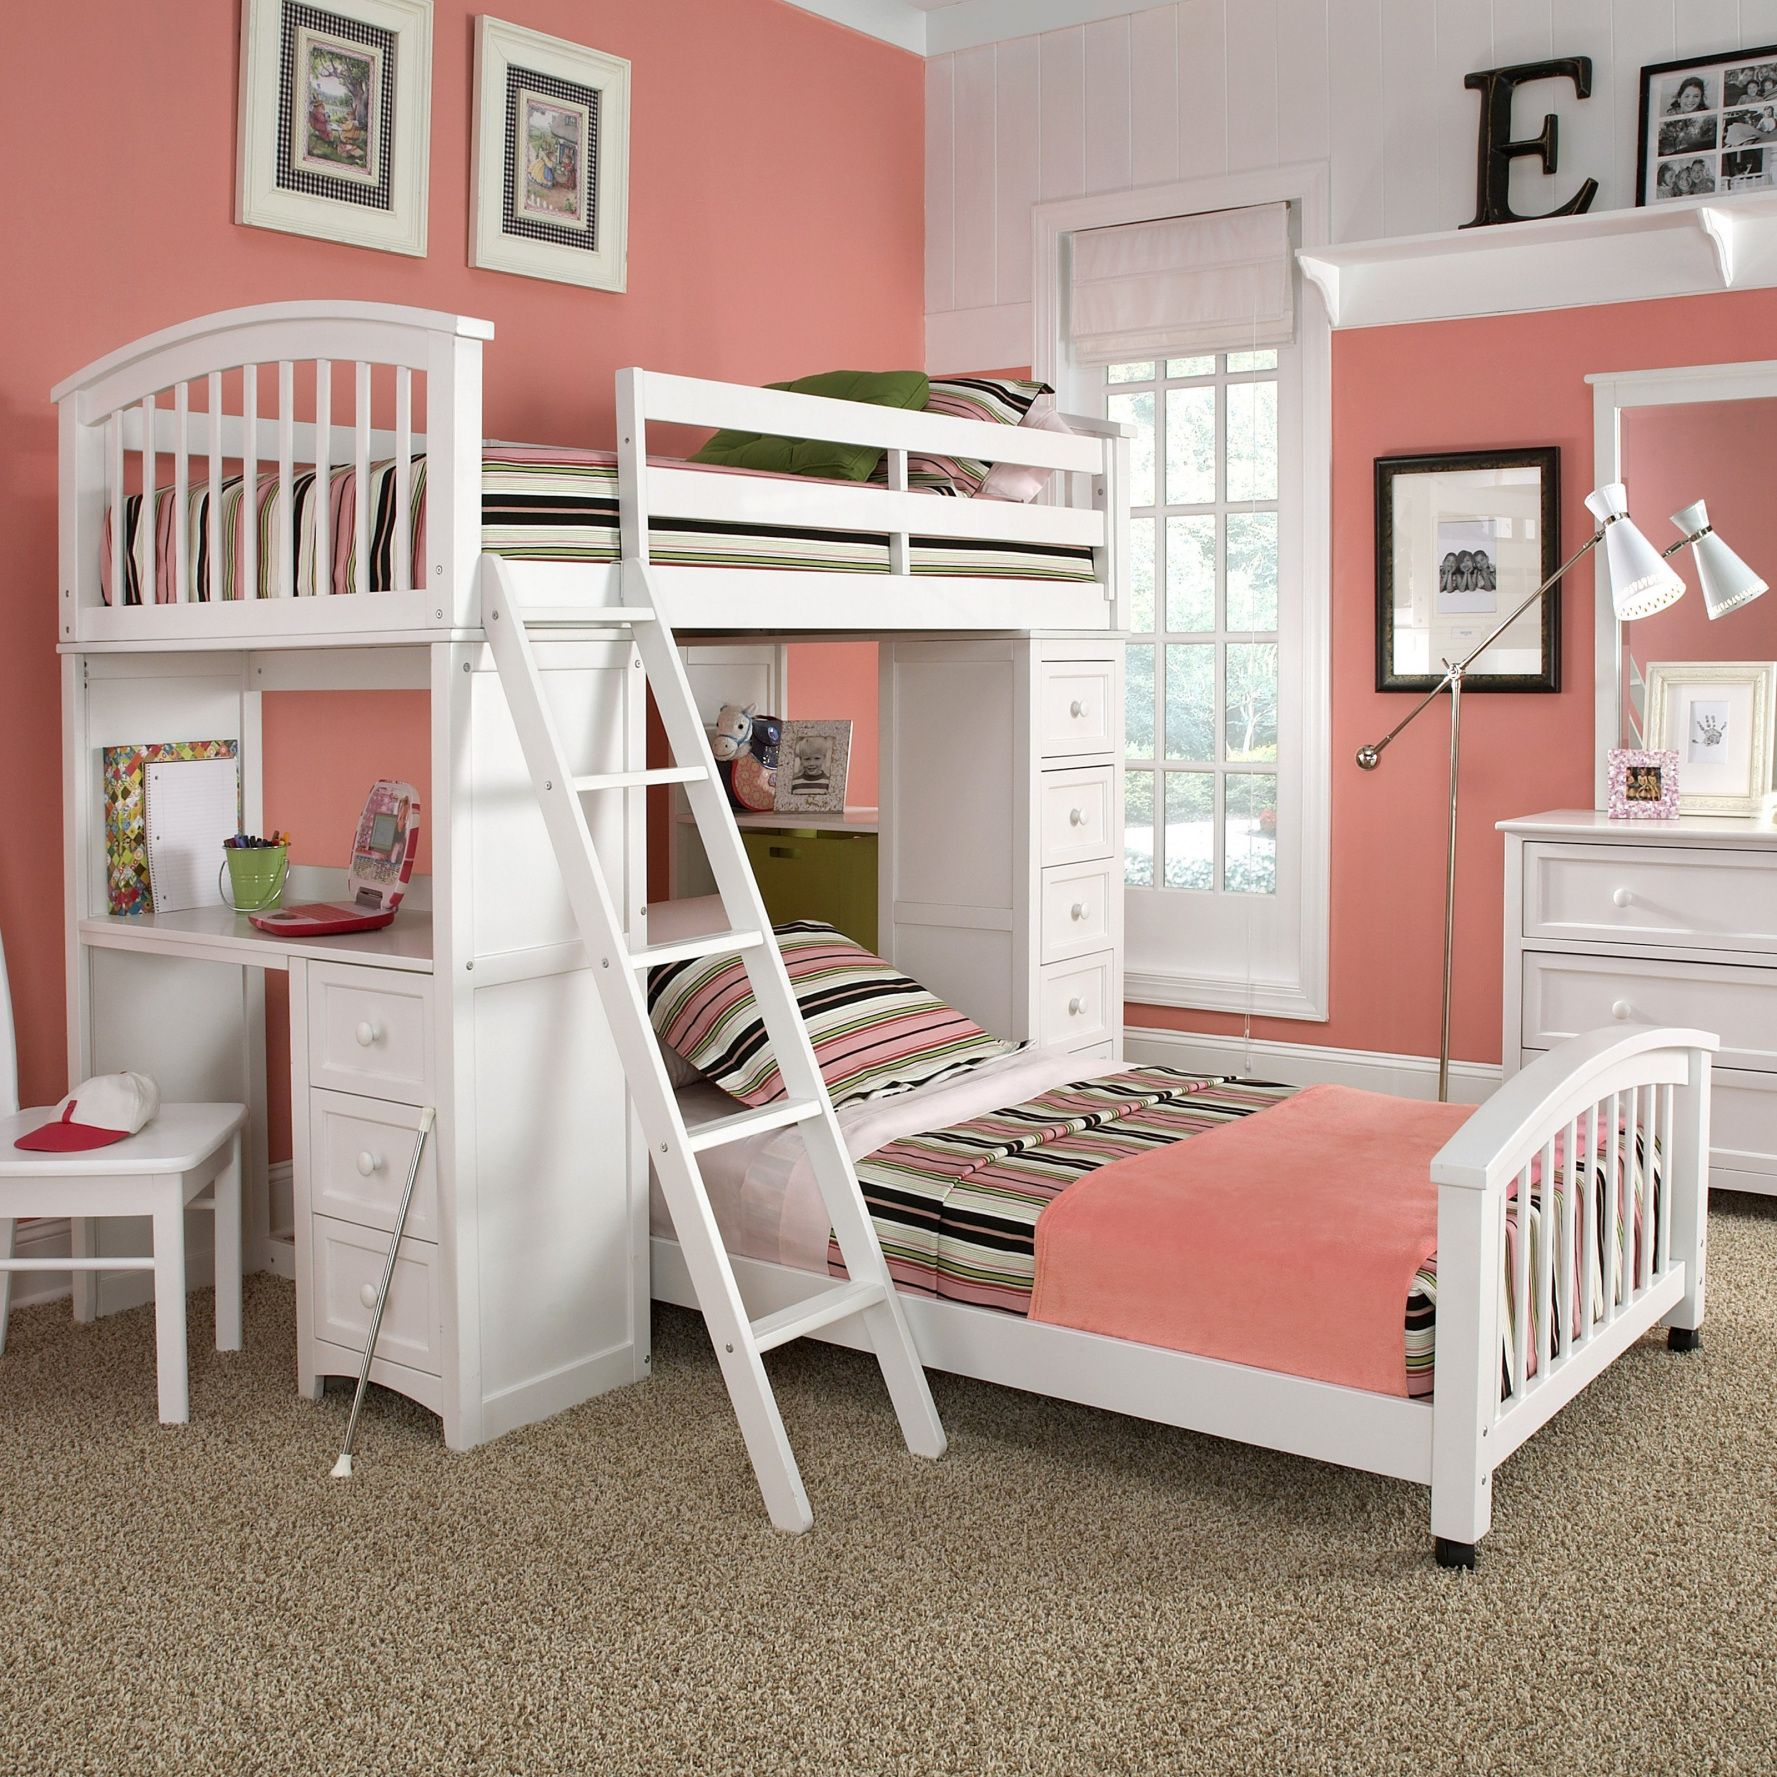 cute girl bunk beds interior designs for bedrooms check more